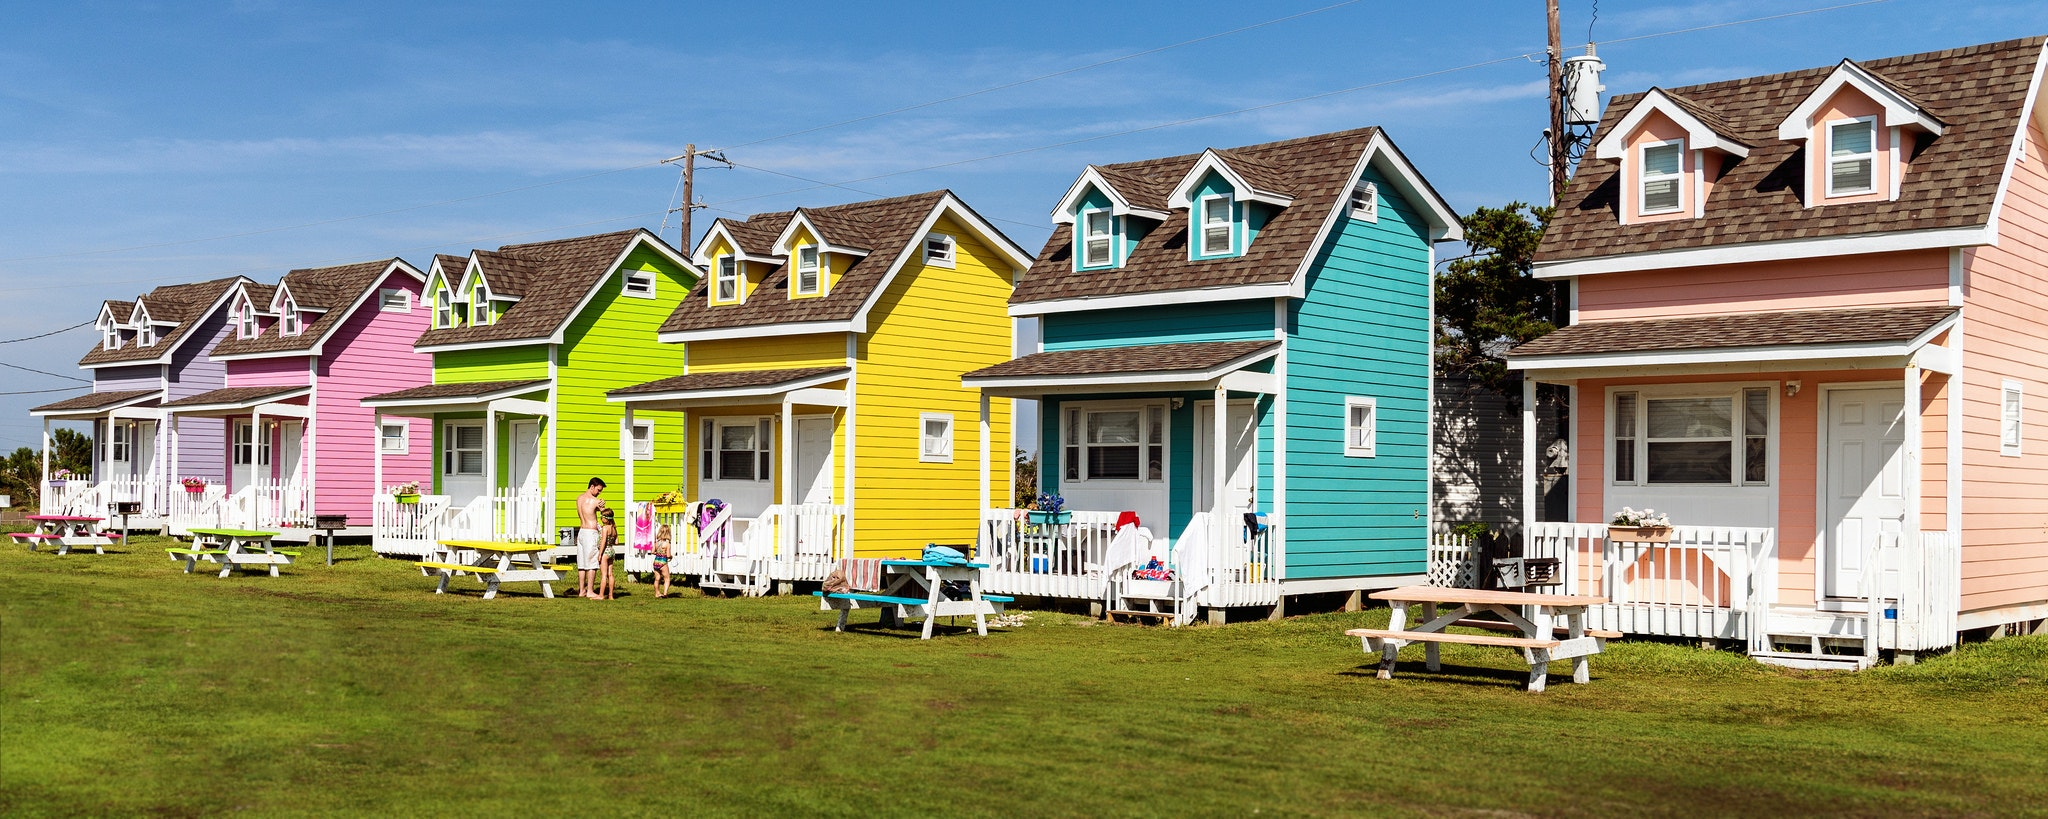 Australians love tiny houses, so why aren't more of us living in them?